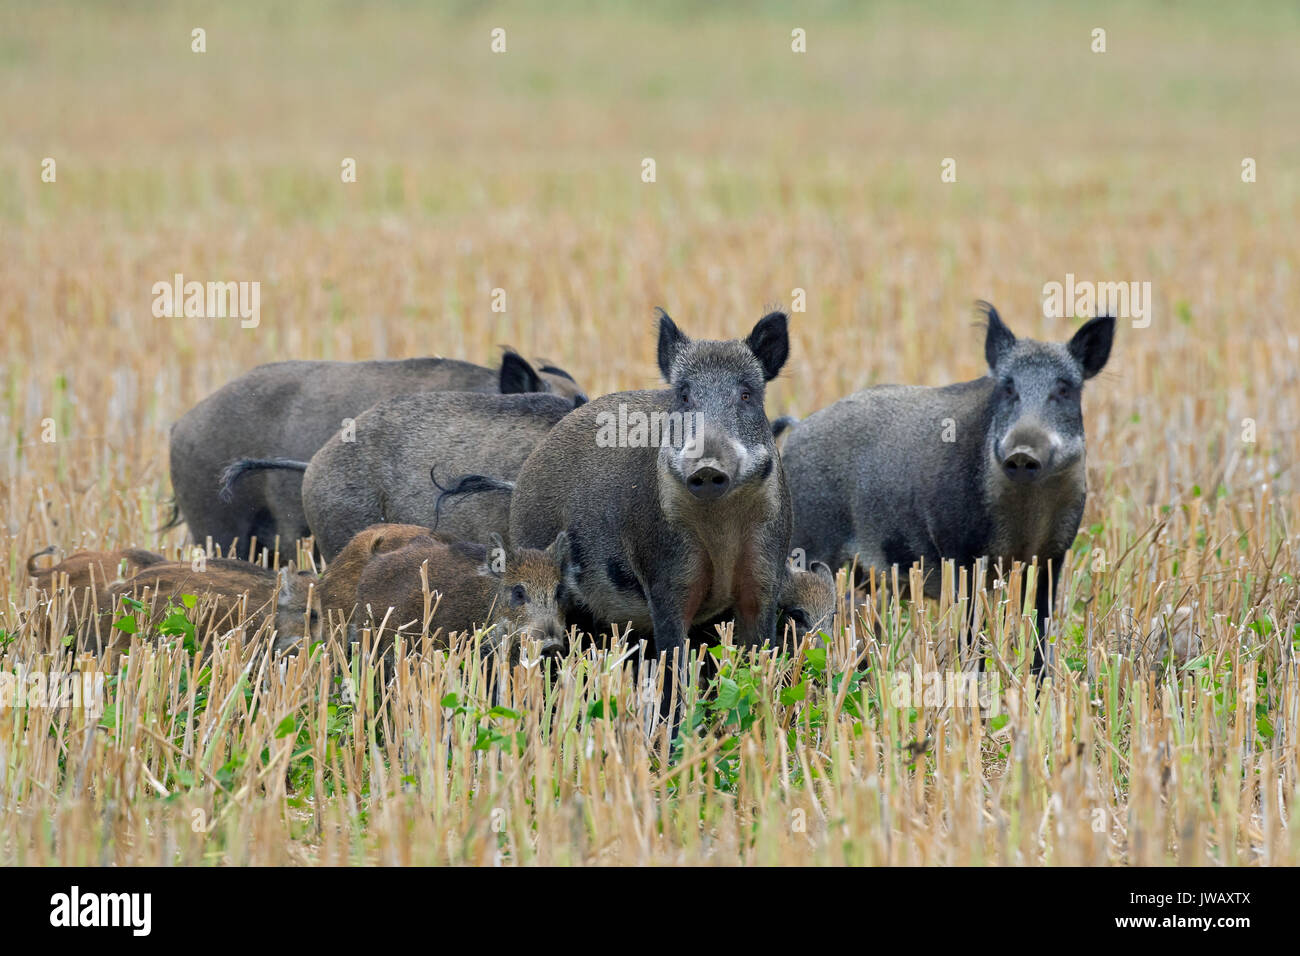 Wild boar (Sus scrofa) sows with piglets crossing a stubblefield in summer - Stock Image